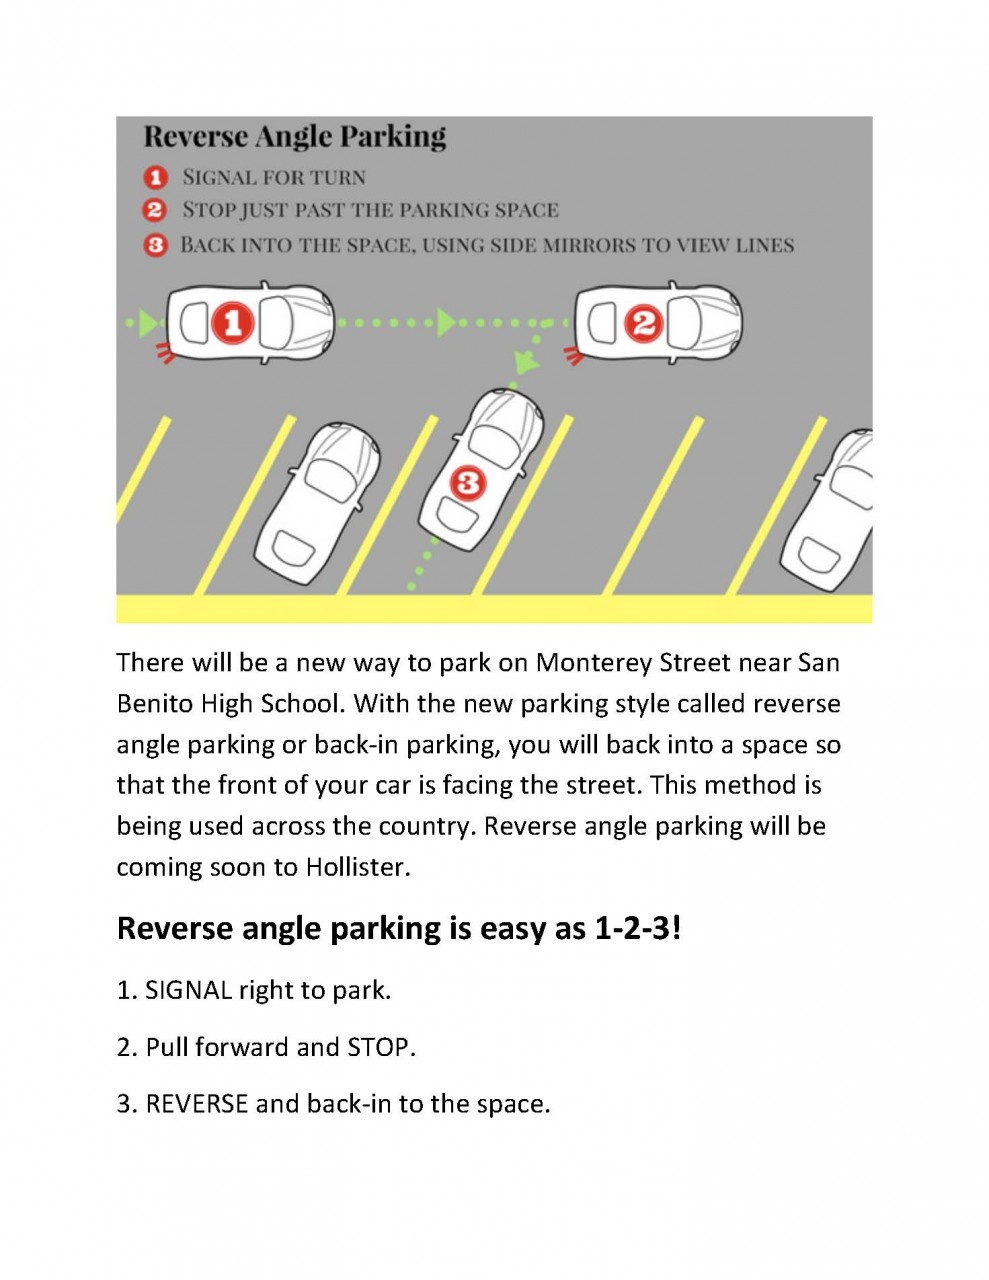 reverse angle parking description_Page_1.jpg